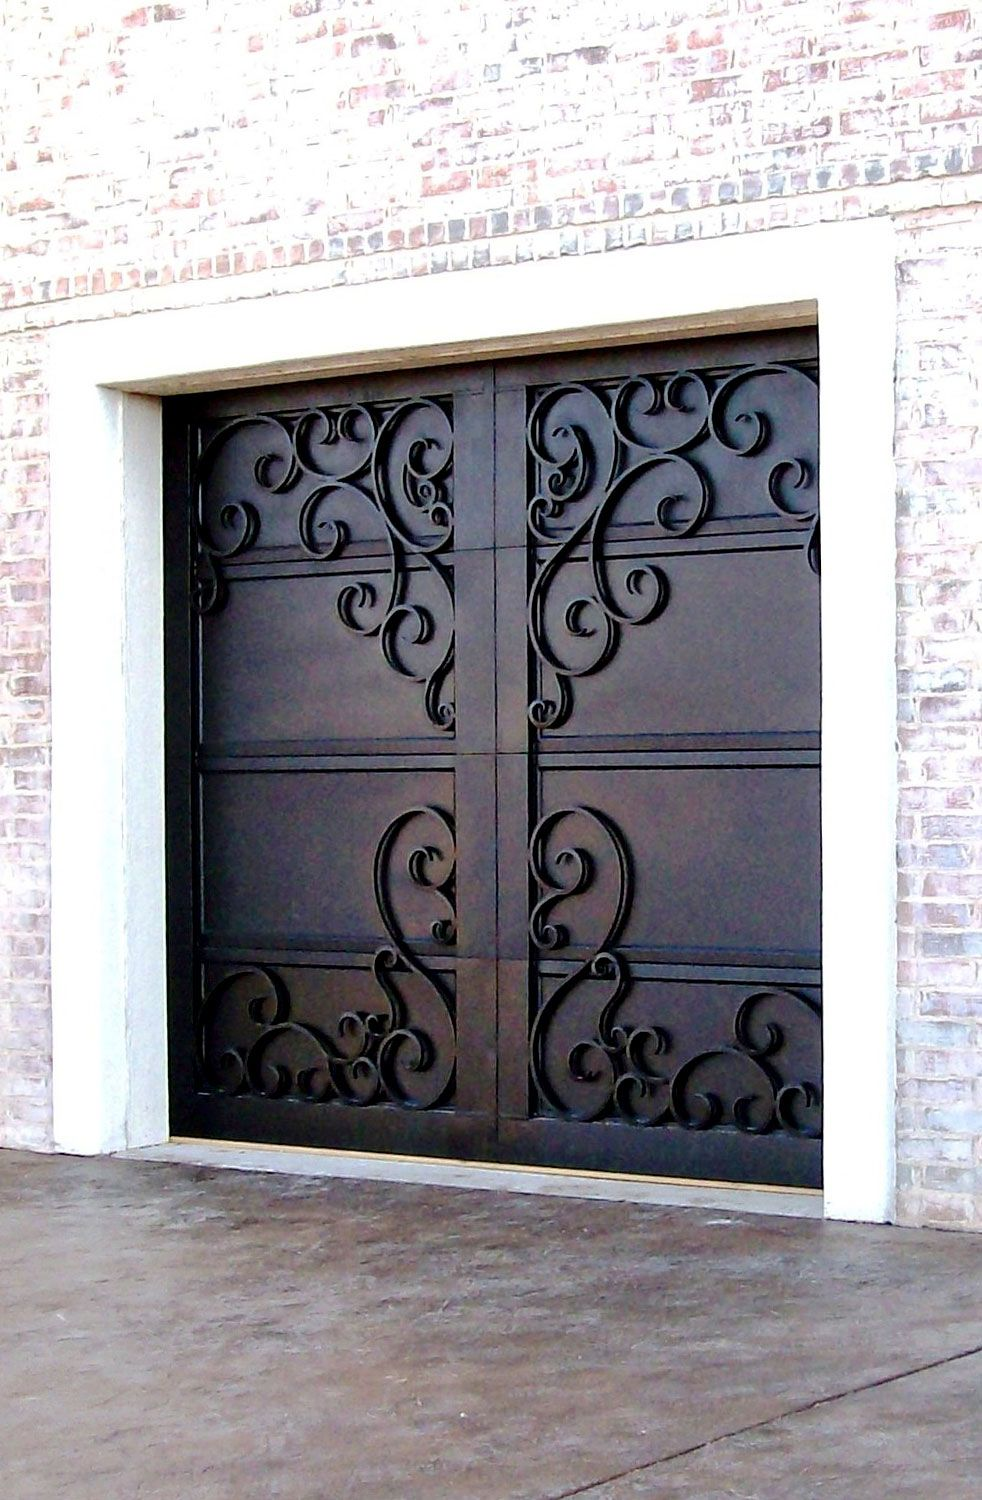 Sensation: 40-8 - from Cantera Doors Entry Gates & Windows. In Texas &  Florida. Custom made, top quality, mat… | Garage door design, Garage doors, Garage  door decor